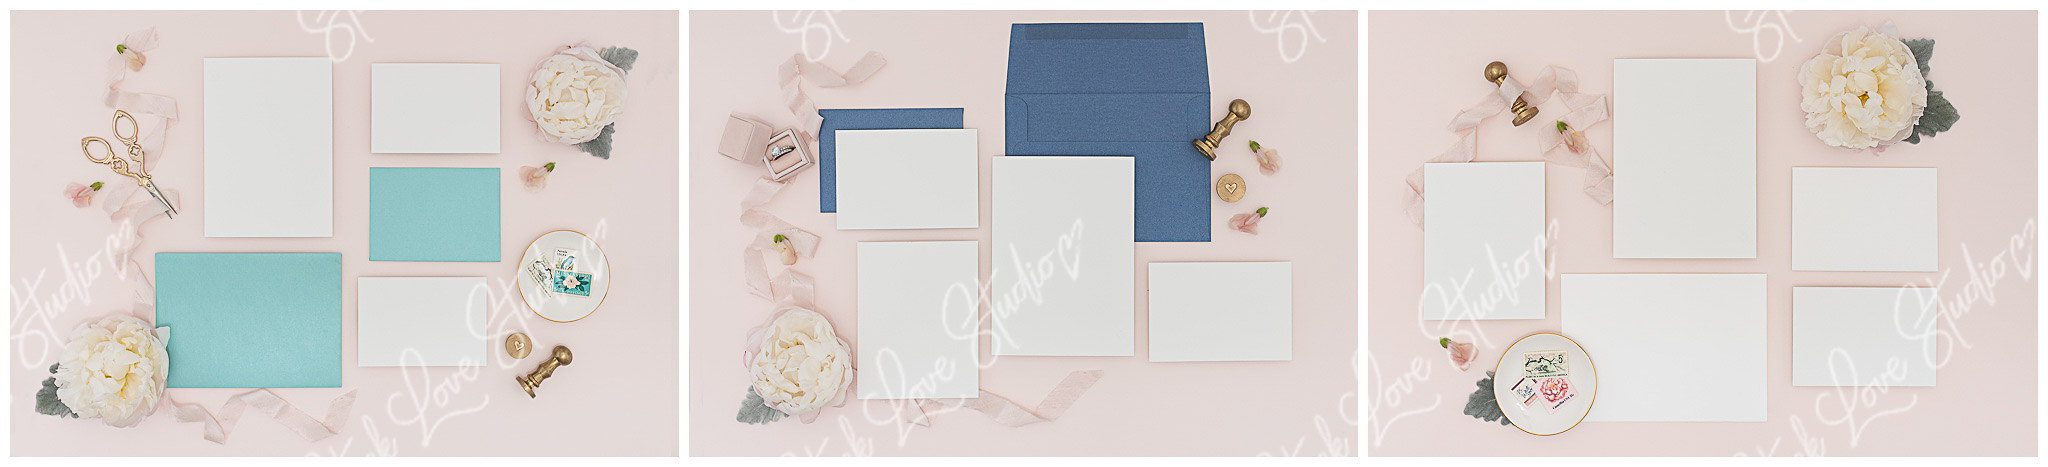 custom_stationery_mockup_0003.jpg